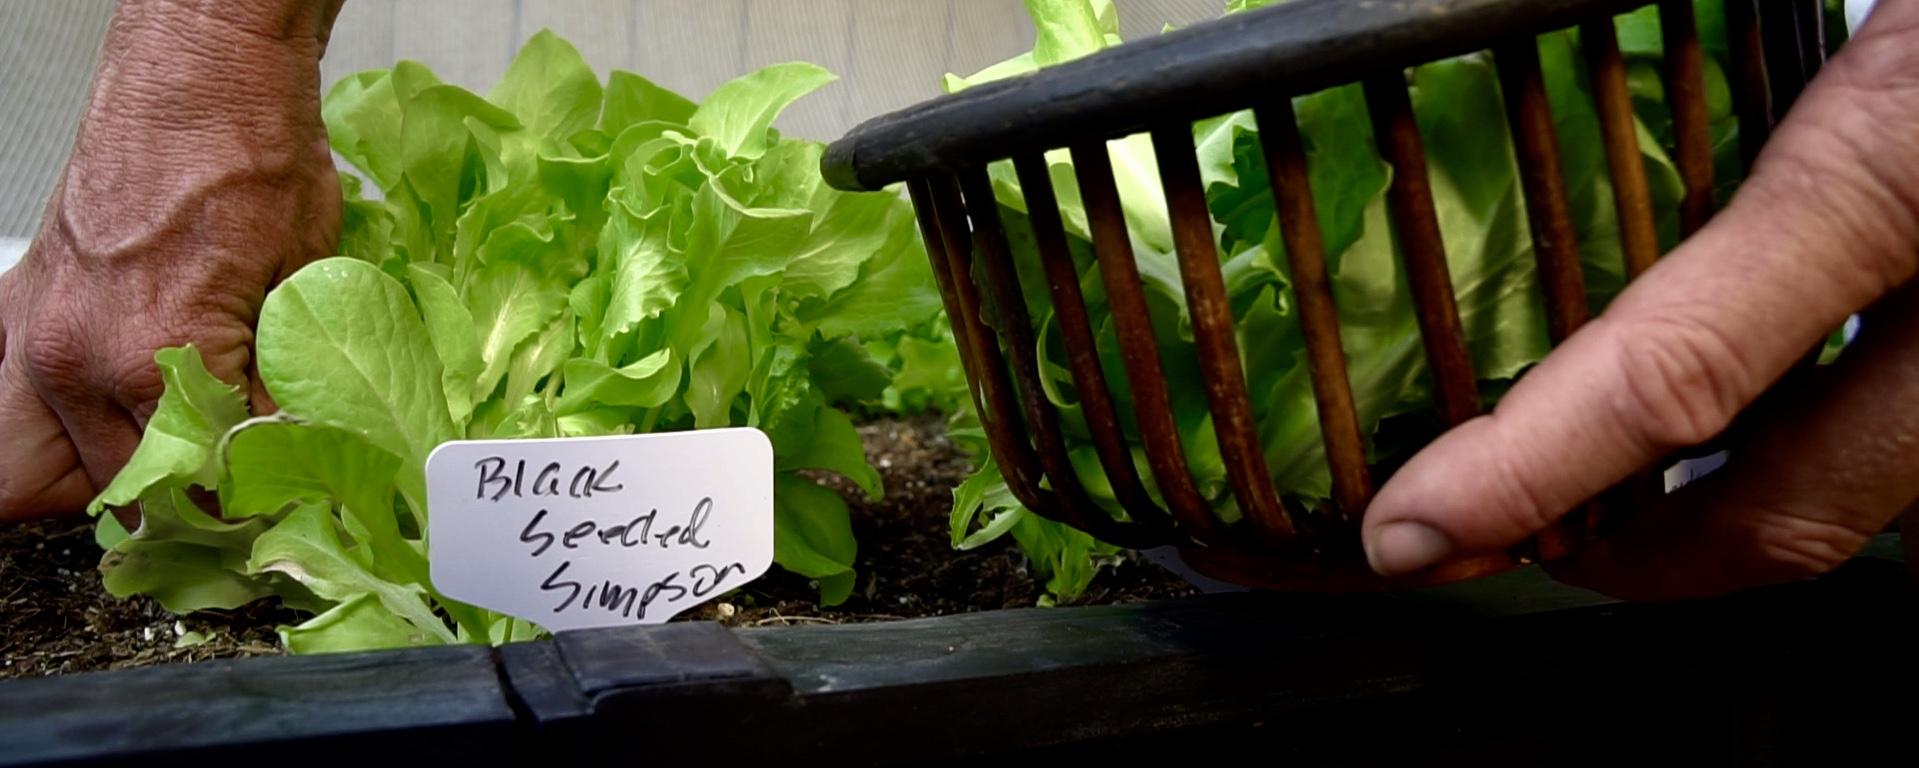 Growing Lettuce in Extreme Summer Heat?  Yes, You Can – In a Vegepod!